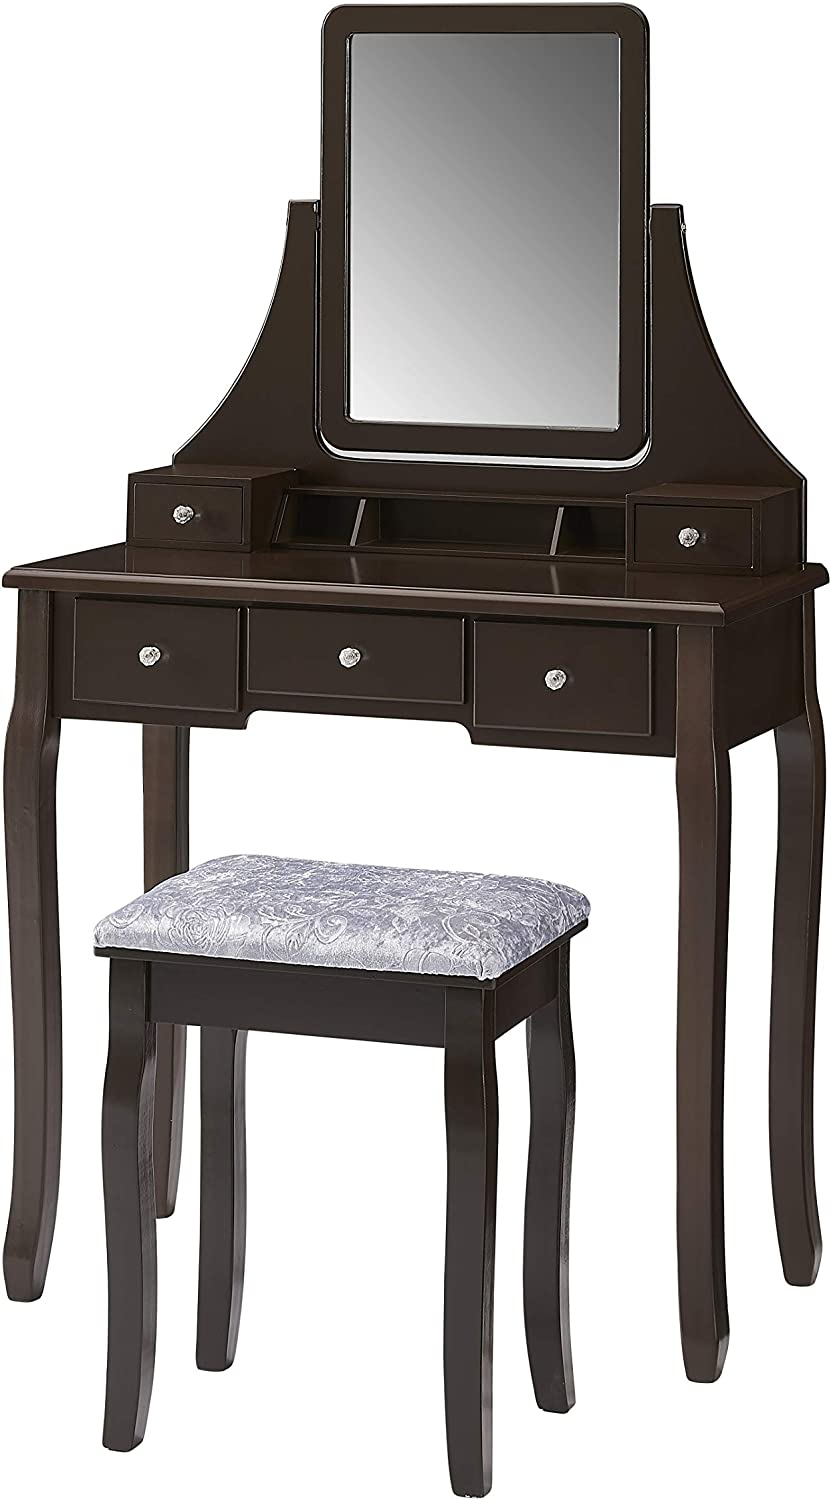 Amazon Com Halter Vanity Table With Adjustable Mirror And Upholstered Stool Set Makeup Organizer And Dressing Table For Bedroom Brown Kitchen Dining